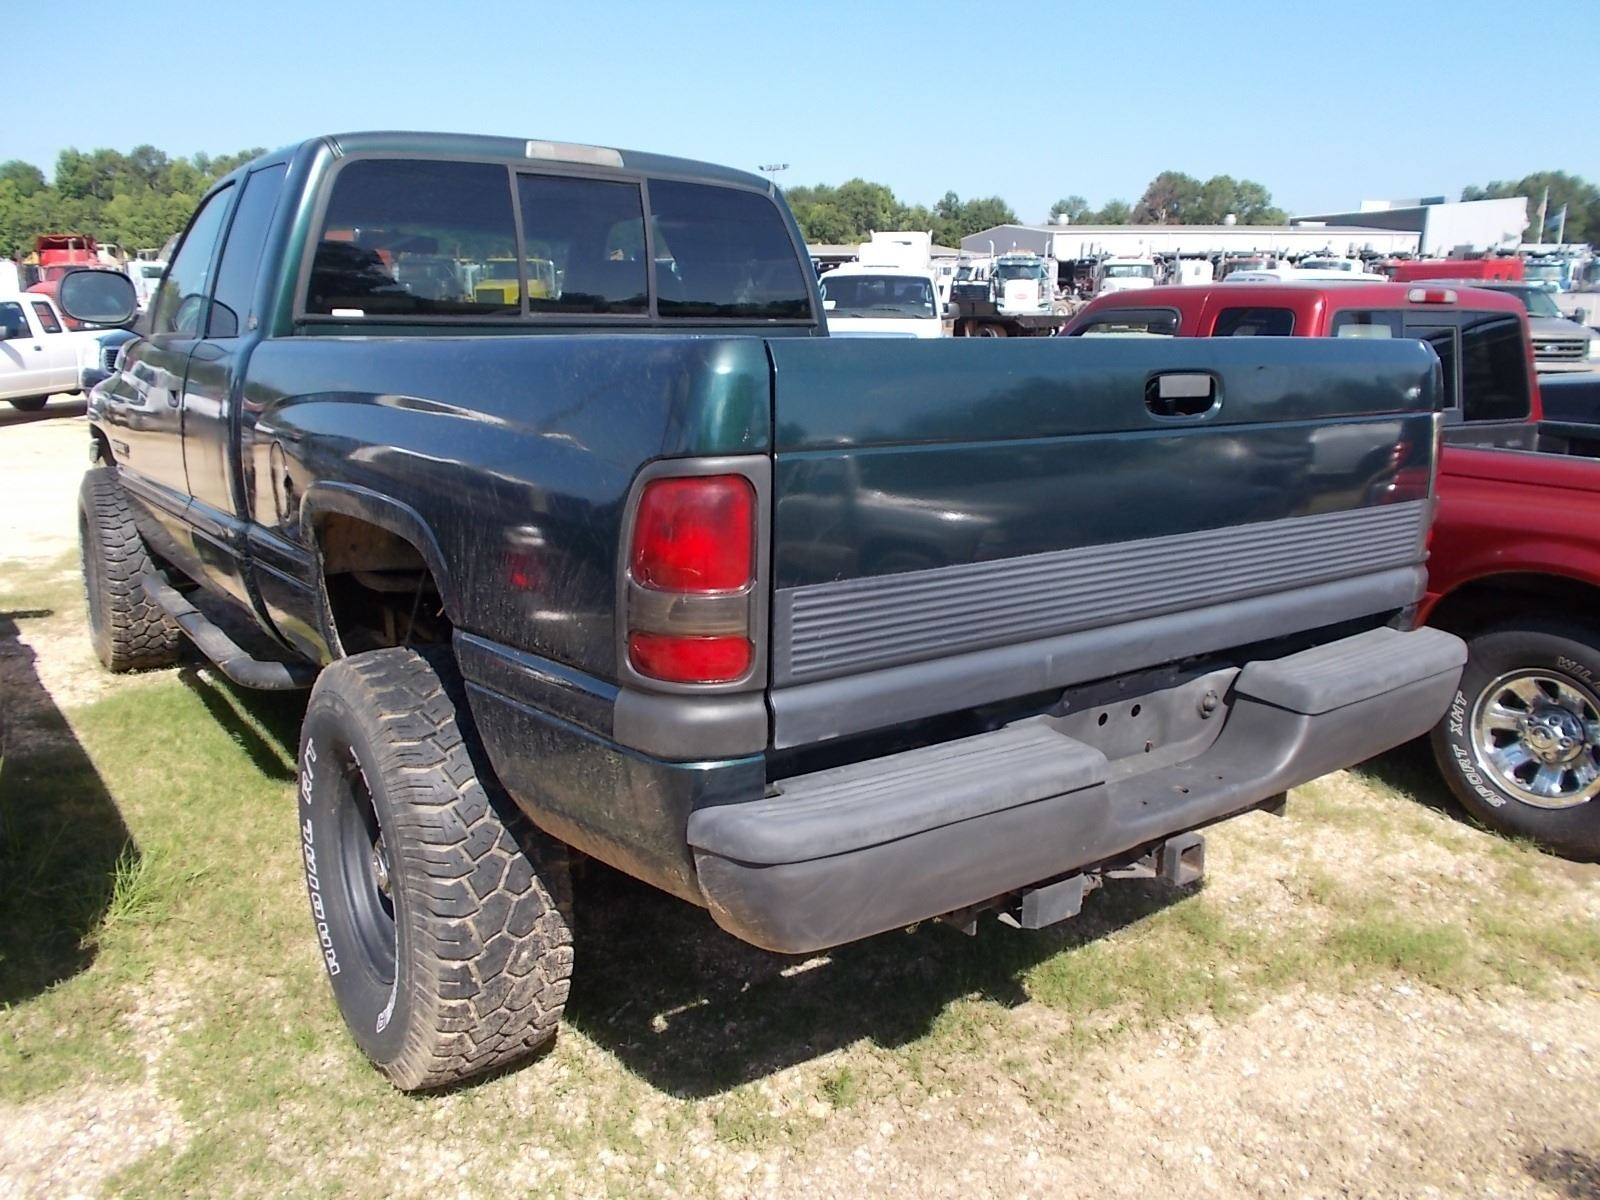 medium resolution of  image 5 2001 dodge ram 2500 pickup vin sn 3b7kf23621g710601 4x4